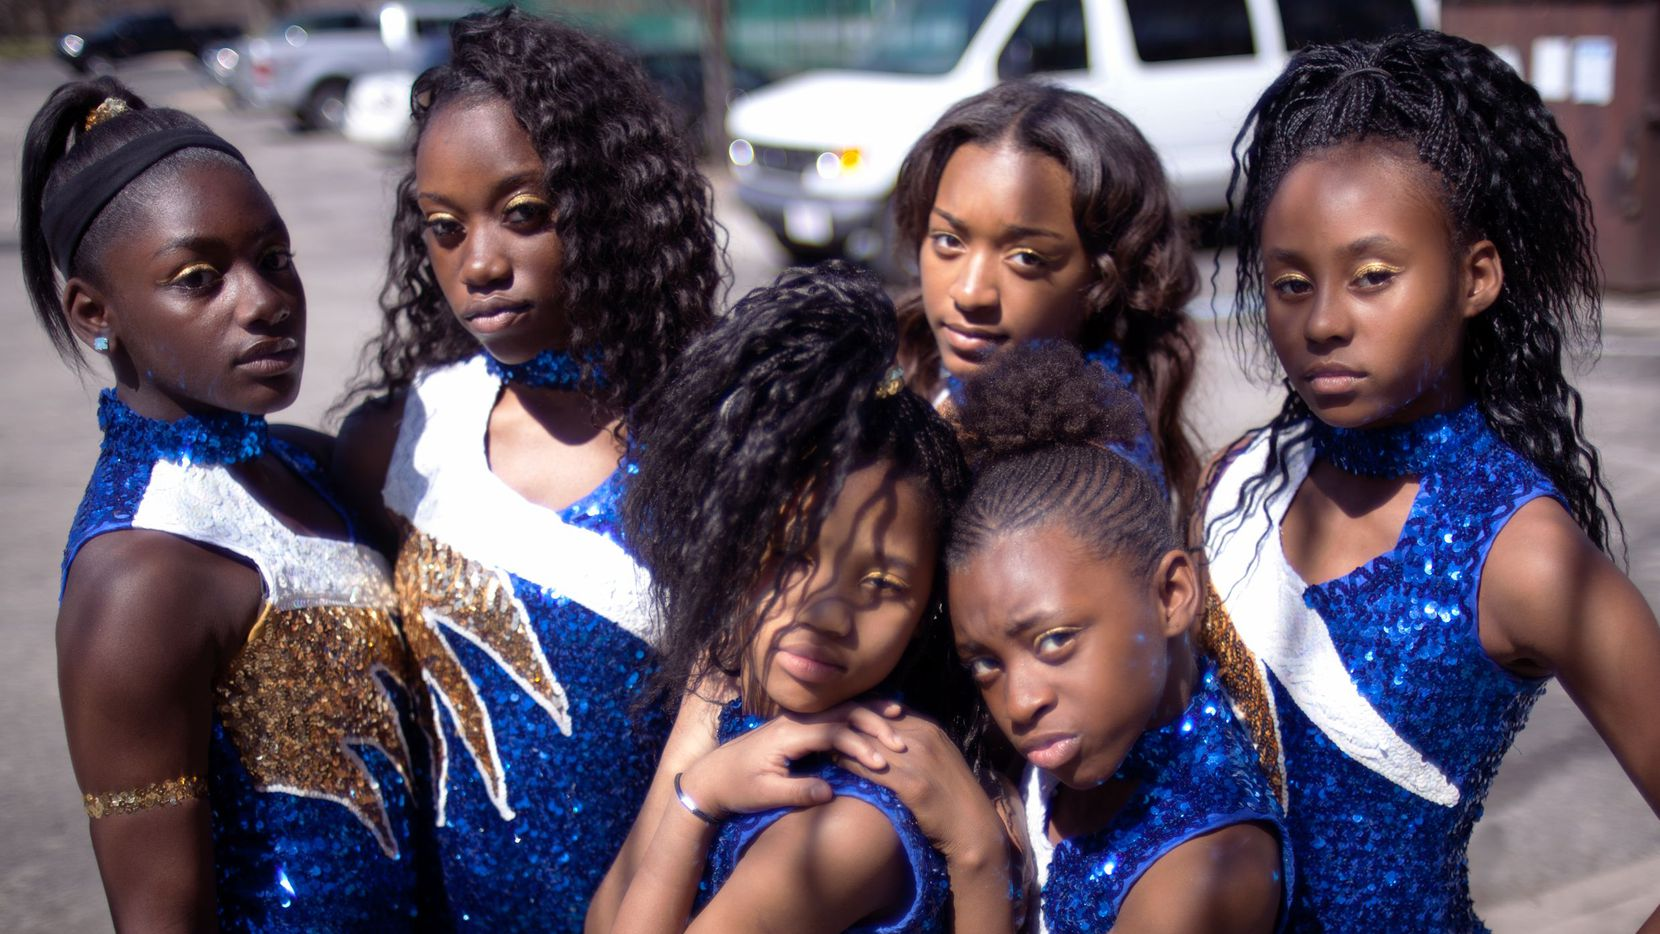 """""""The Fits"""" will make its Texas premiere at the Oak Cliff Film Festival. (Photo by Tayarishi Poe)"""